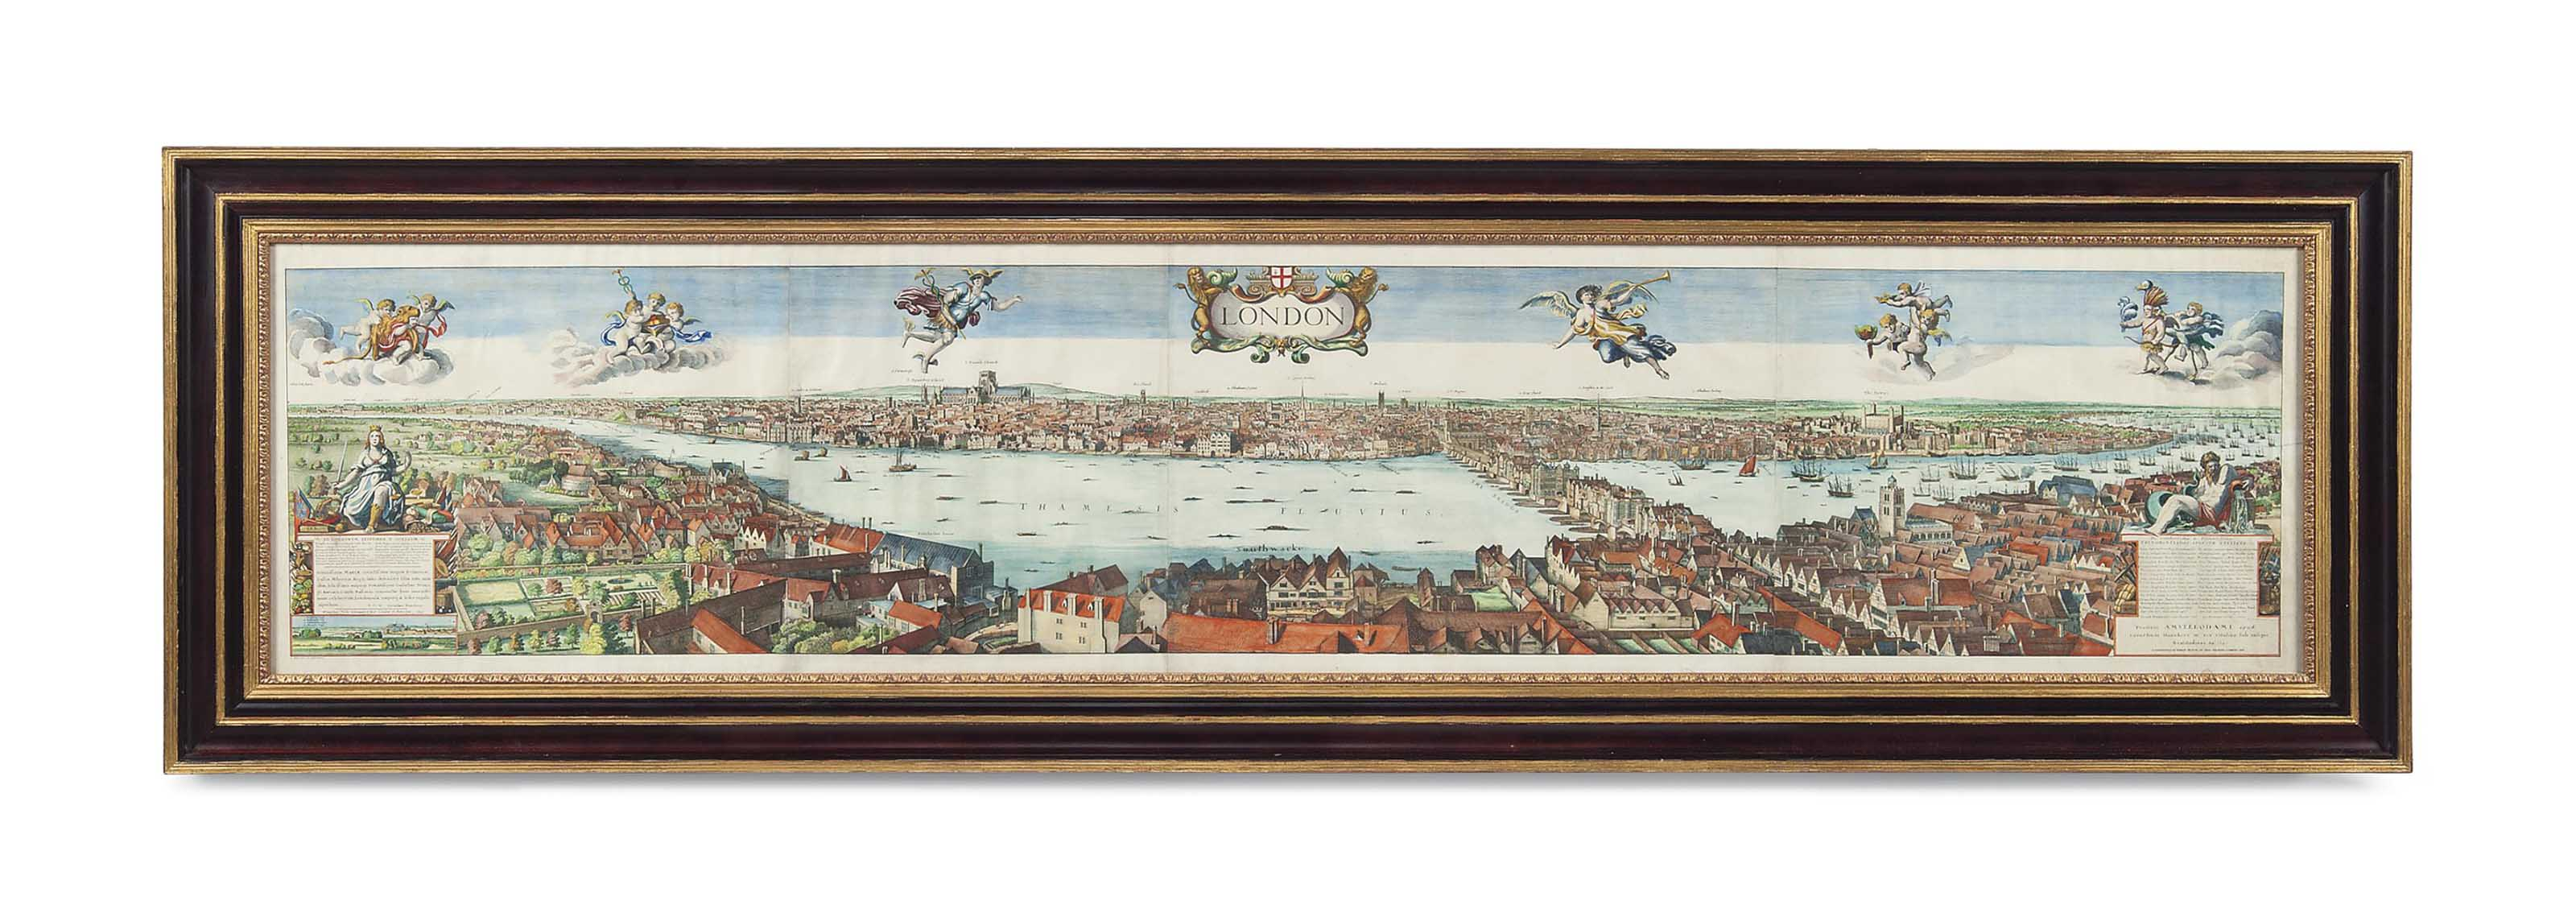 THE LONG VIEW OF LONDON FROM BANKSIDE - HAND-COLOURED LITHOGRAPH